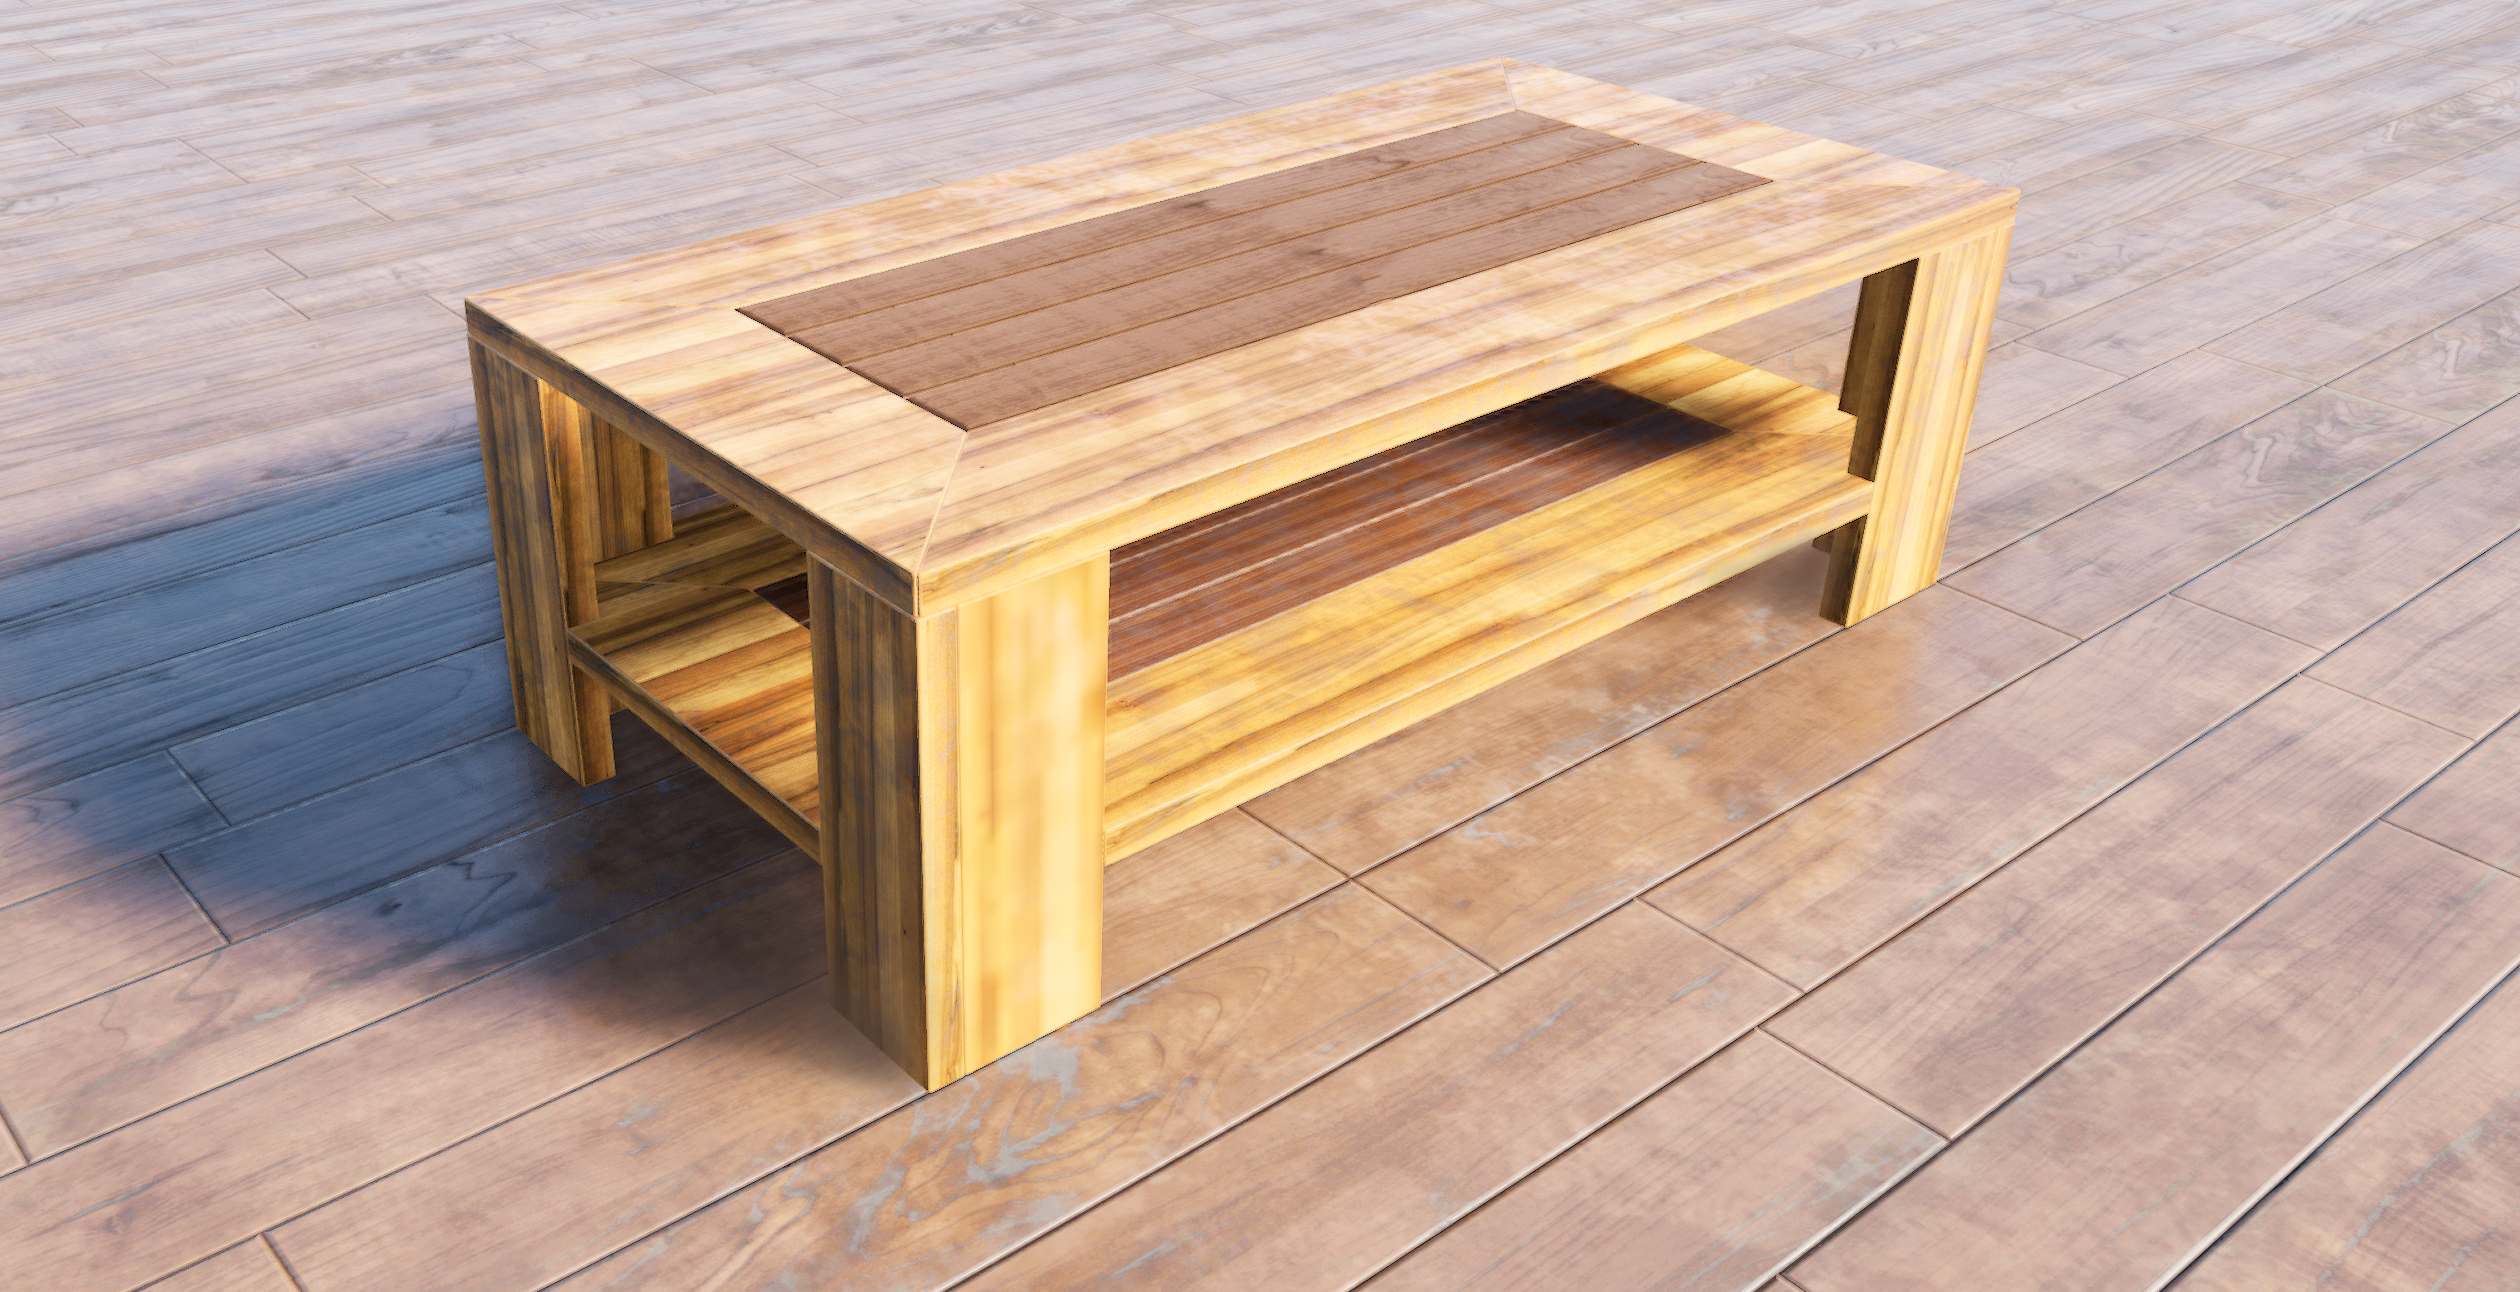 Rendered coffe table 3D model